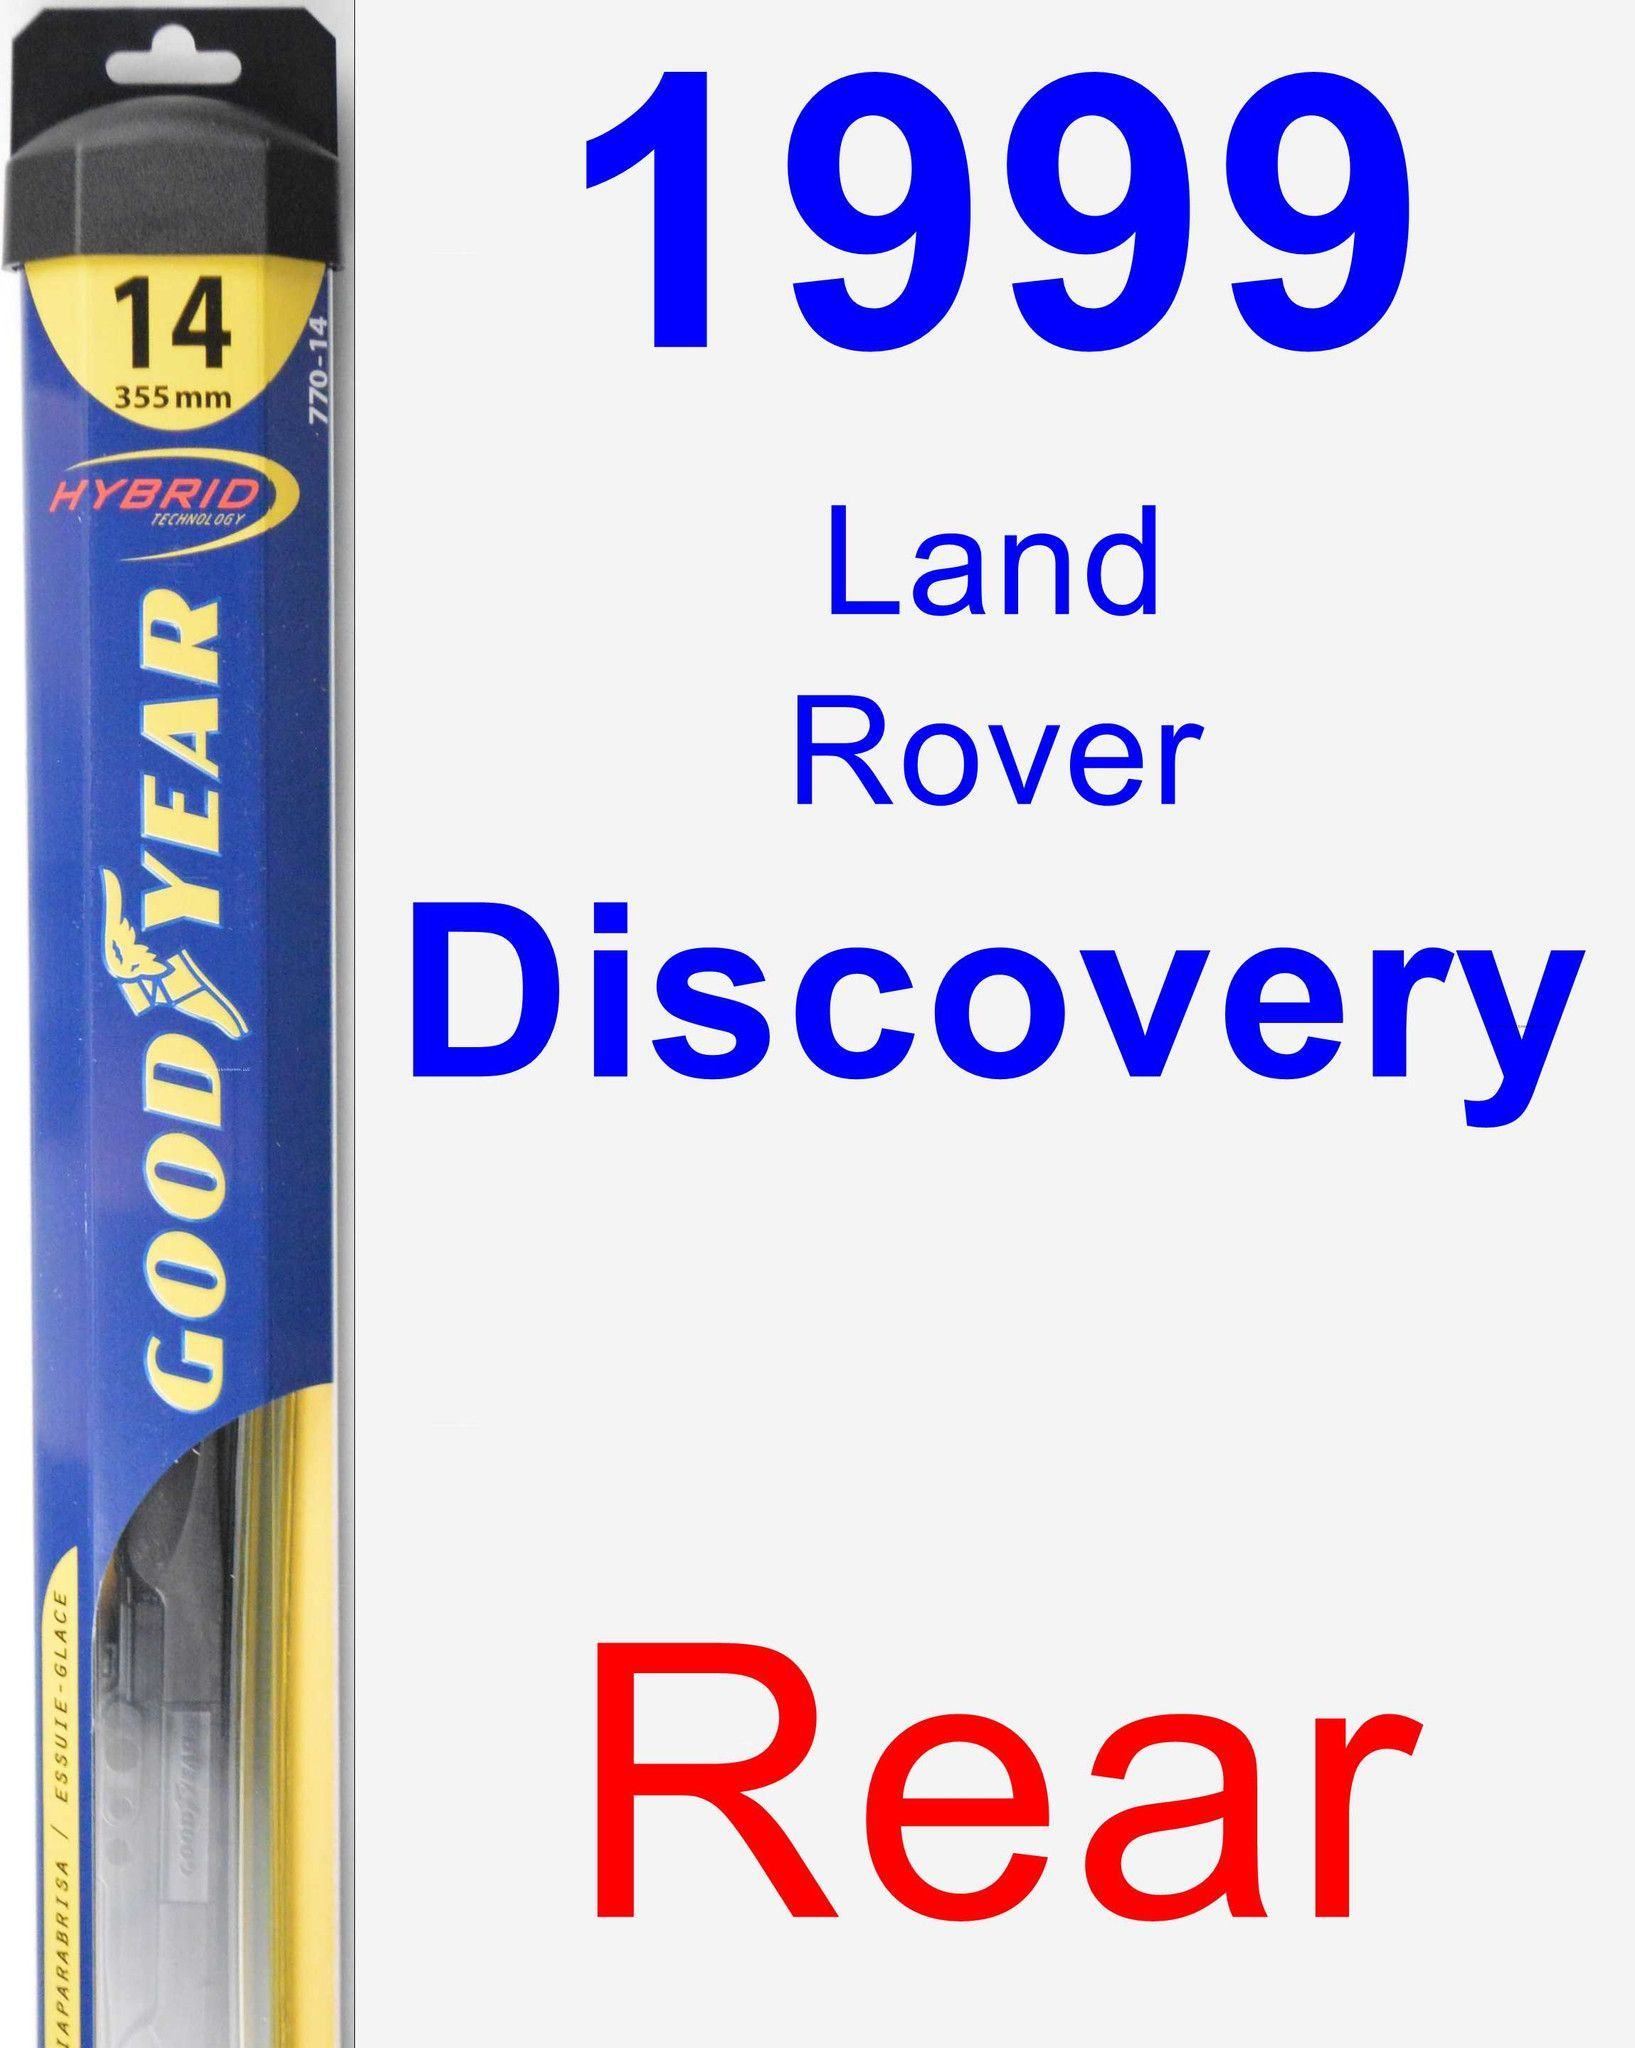 Rear Wiper Blade for 1999 Land Rover Discovery - Hybrid